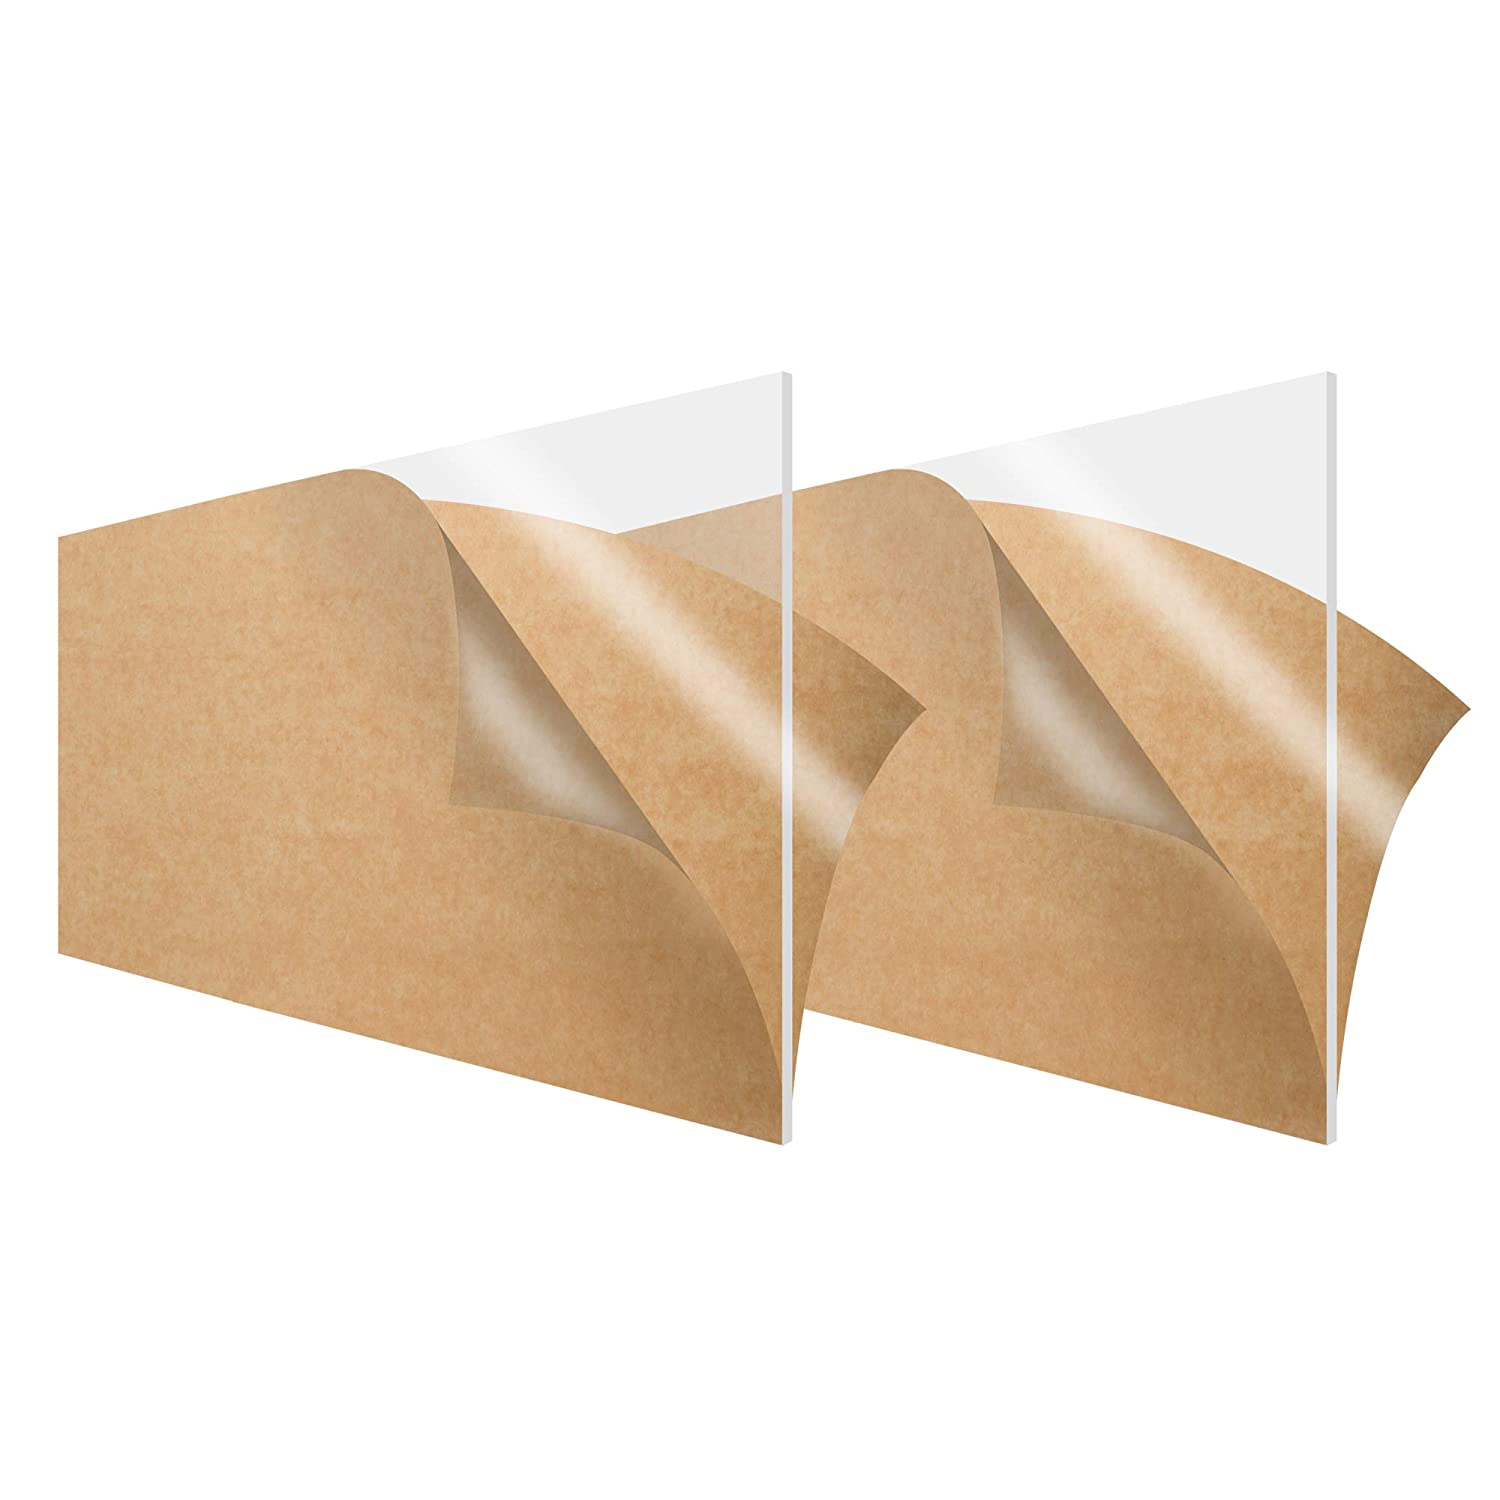 """3/"""" x 3/"""" Clear Acrylic Sheet Pack of 5 Square Plexiglass Tiles for DIY Projects"""